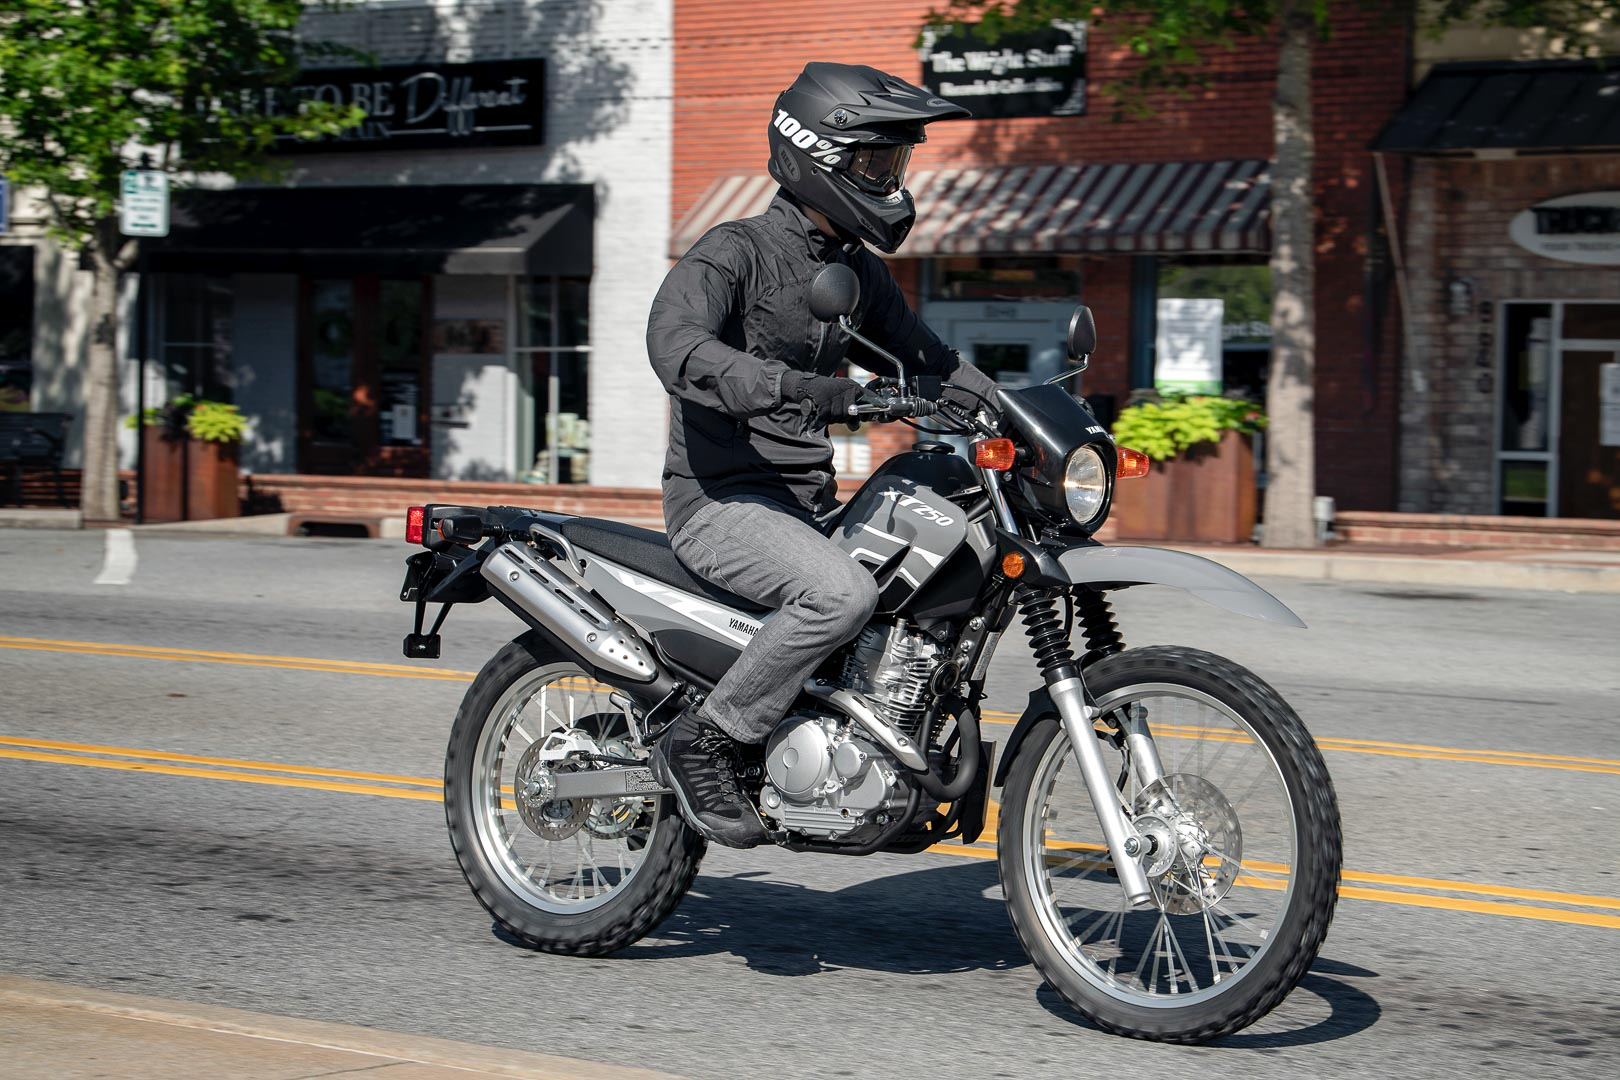 2021 Yamaha XT250 Buyer's Guide - MSRP